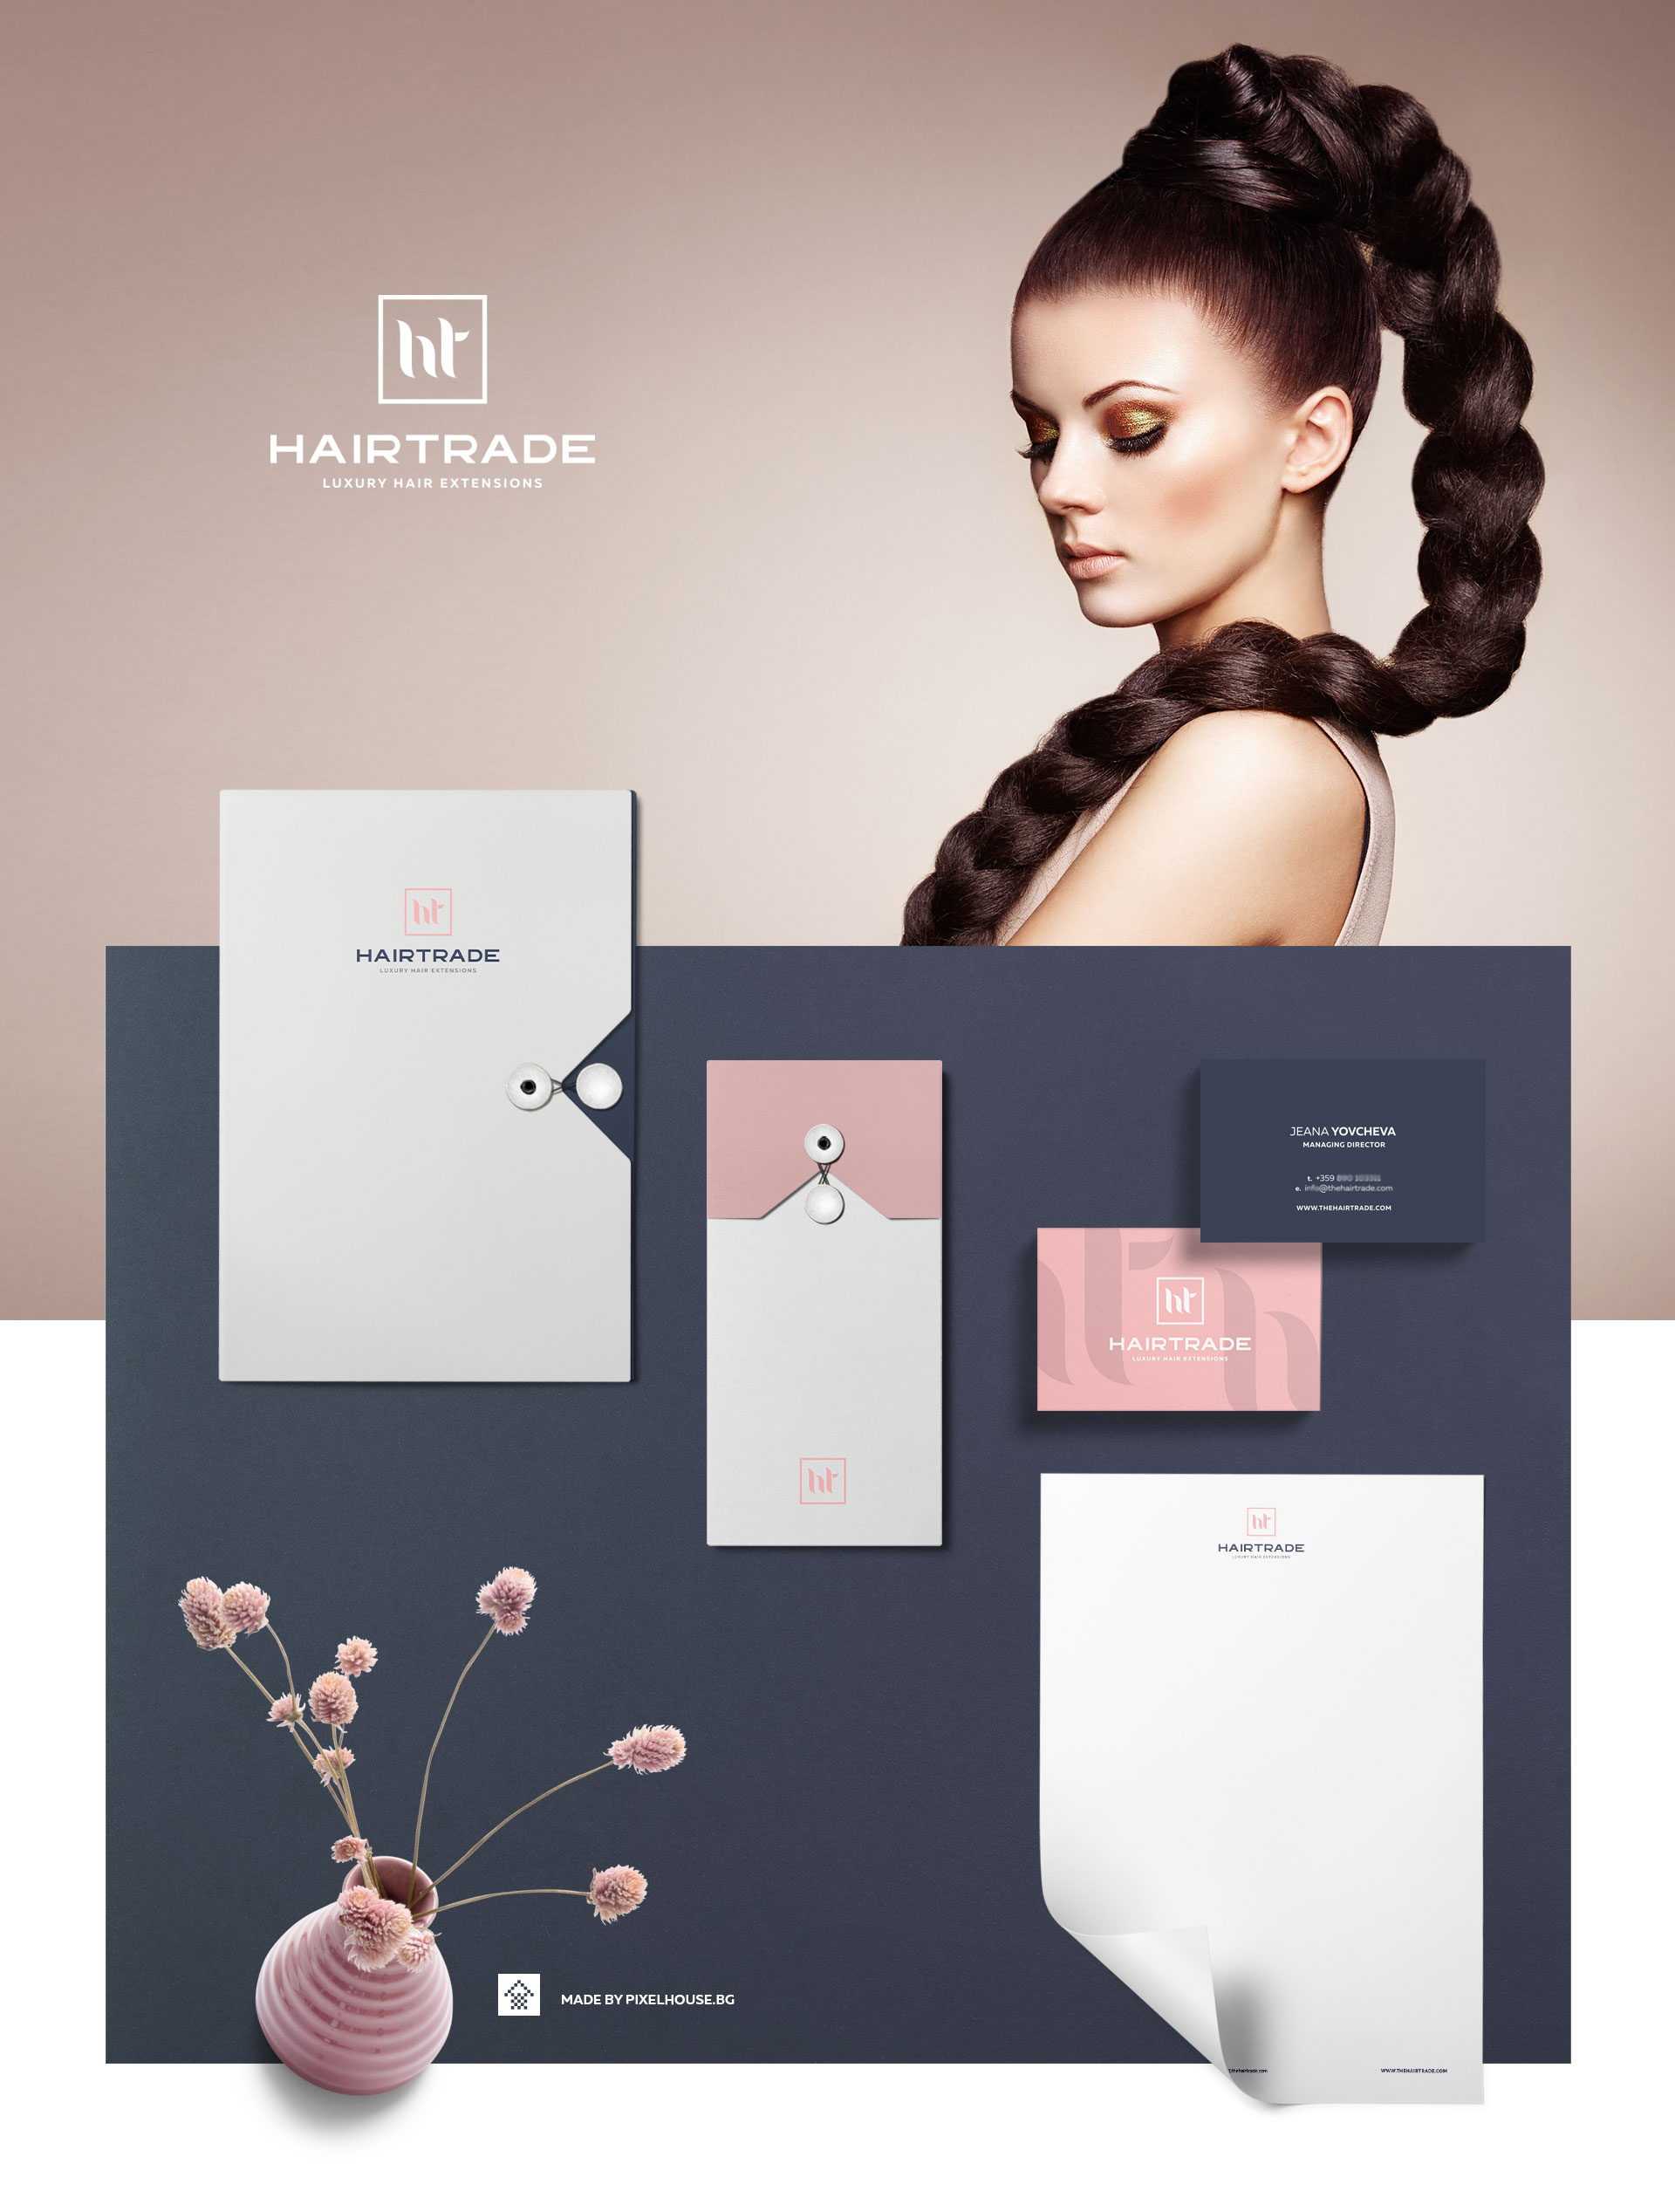 HairTrade-branding-image2>